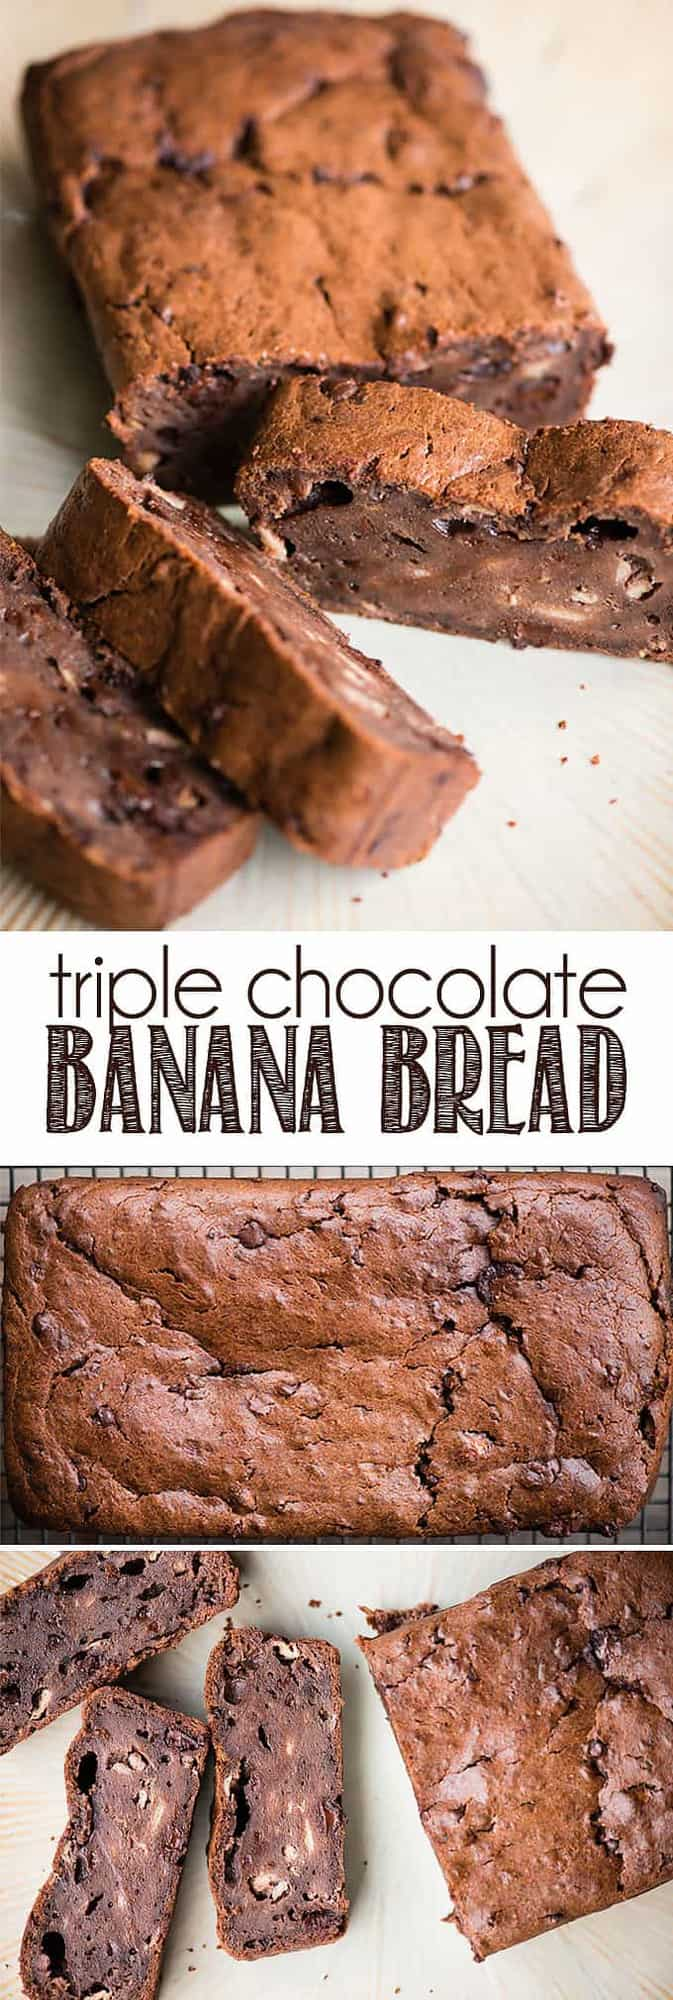 Triple Chocolate Banana Bread is an incredibly moist sour cream banana bread made extra chocolately from cocoa powder, chocolate chunks, and mini chocolate chips. The result is a dense sweet quick bread that is loaded with both chocolate and banana flavor. Enjoy it with coffee for breakfast or as a sweet snack! #bananabread #chocolate #chocolatebananabread